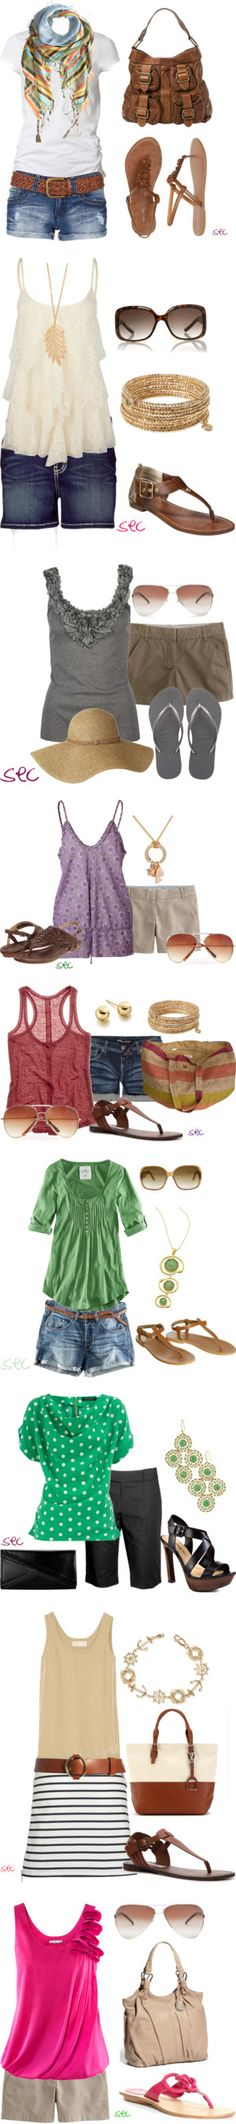 Cute, casual summer. I will take them all =)